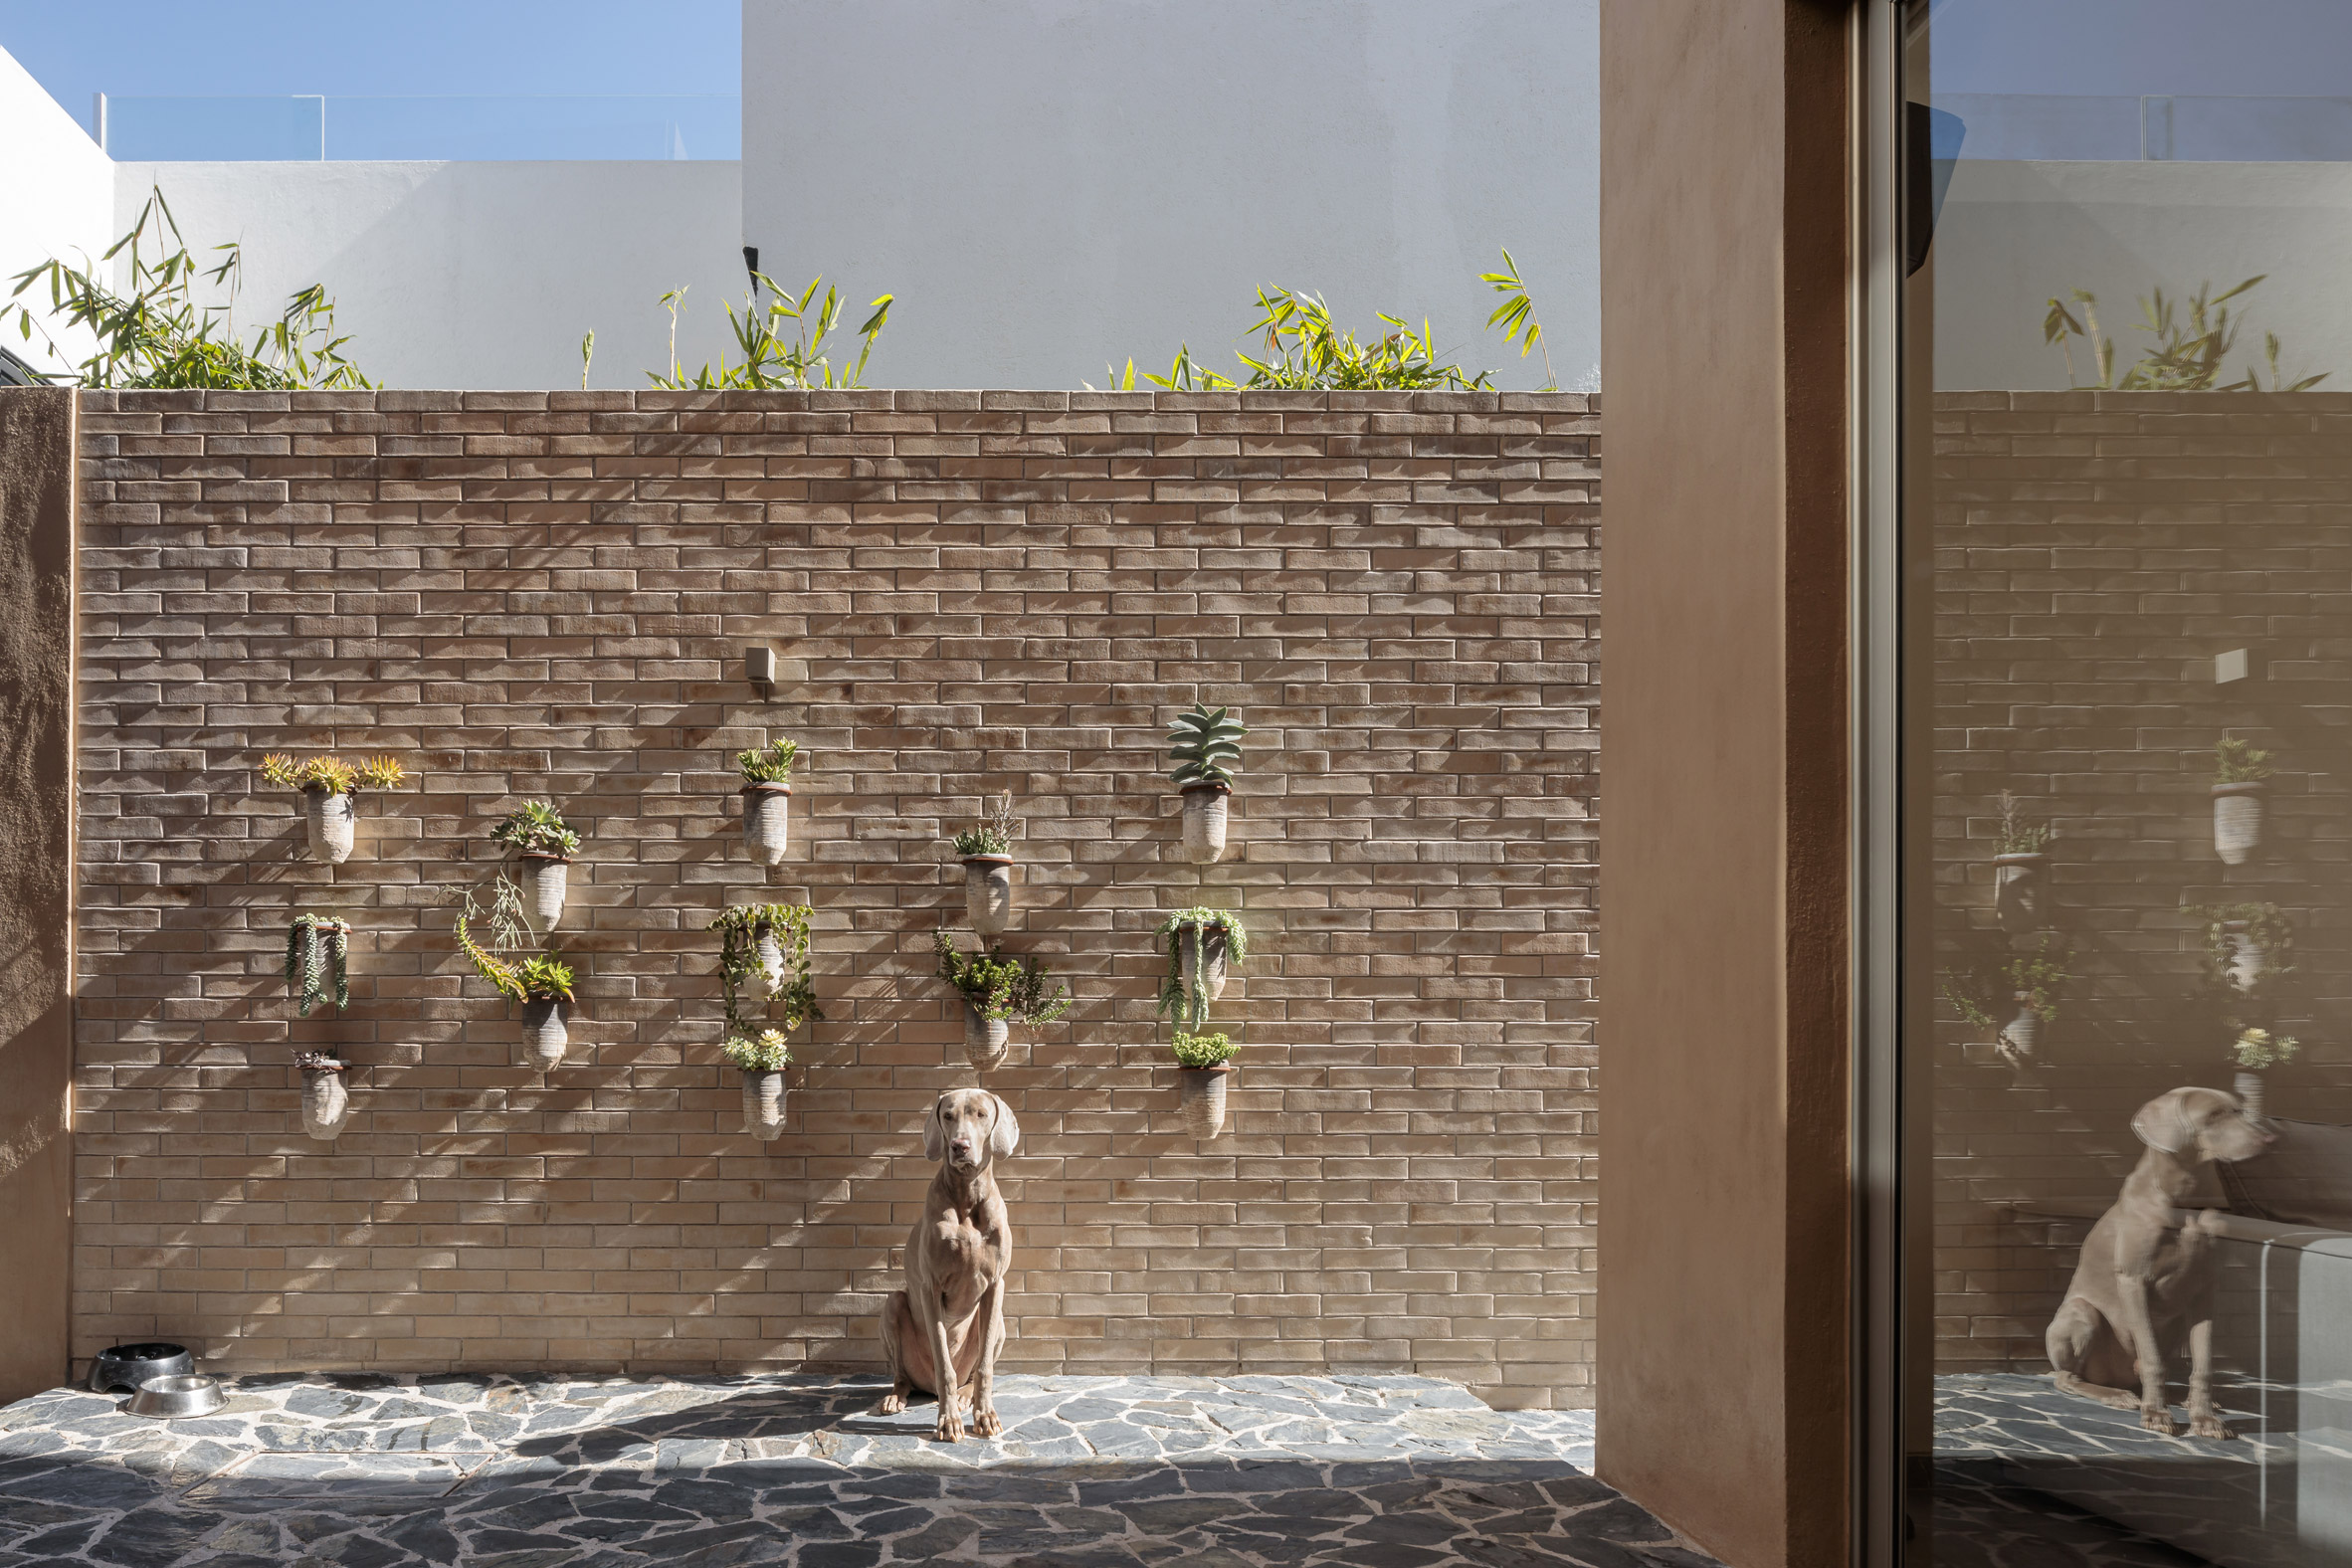 Courtyard of Yavia House by Intersticial Arquitectura